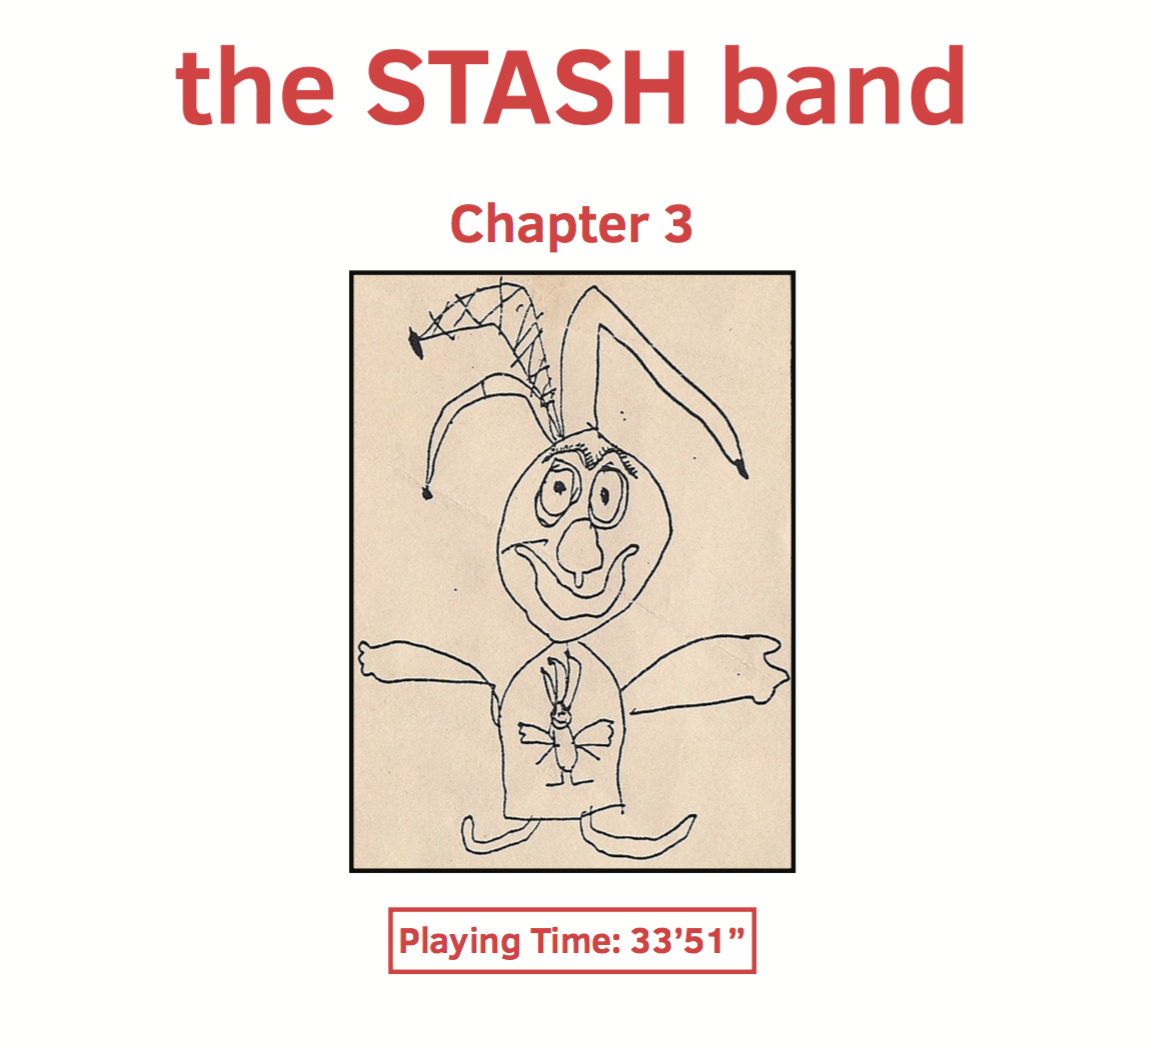 CHAPTER 3 COVER.png